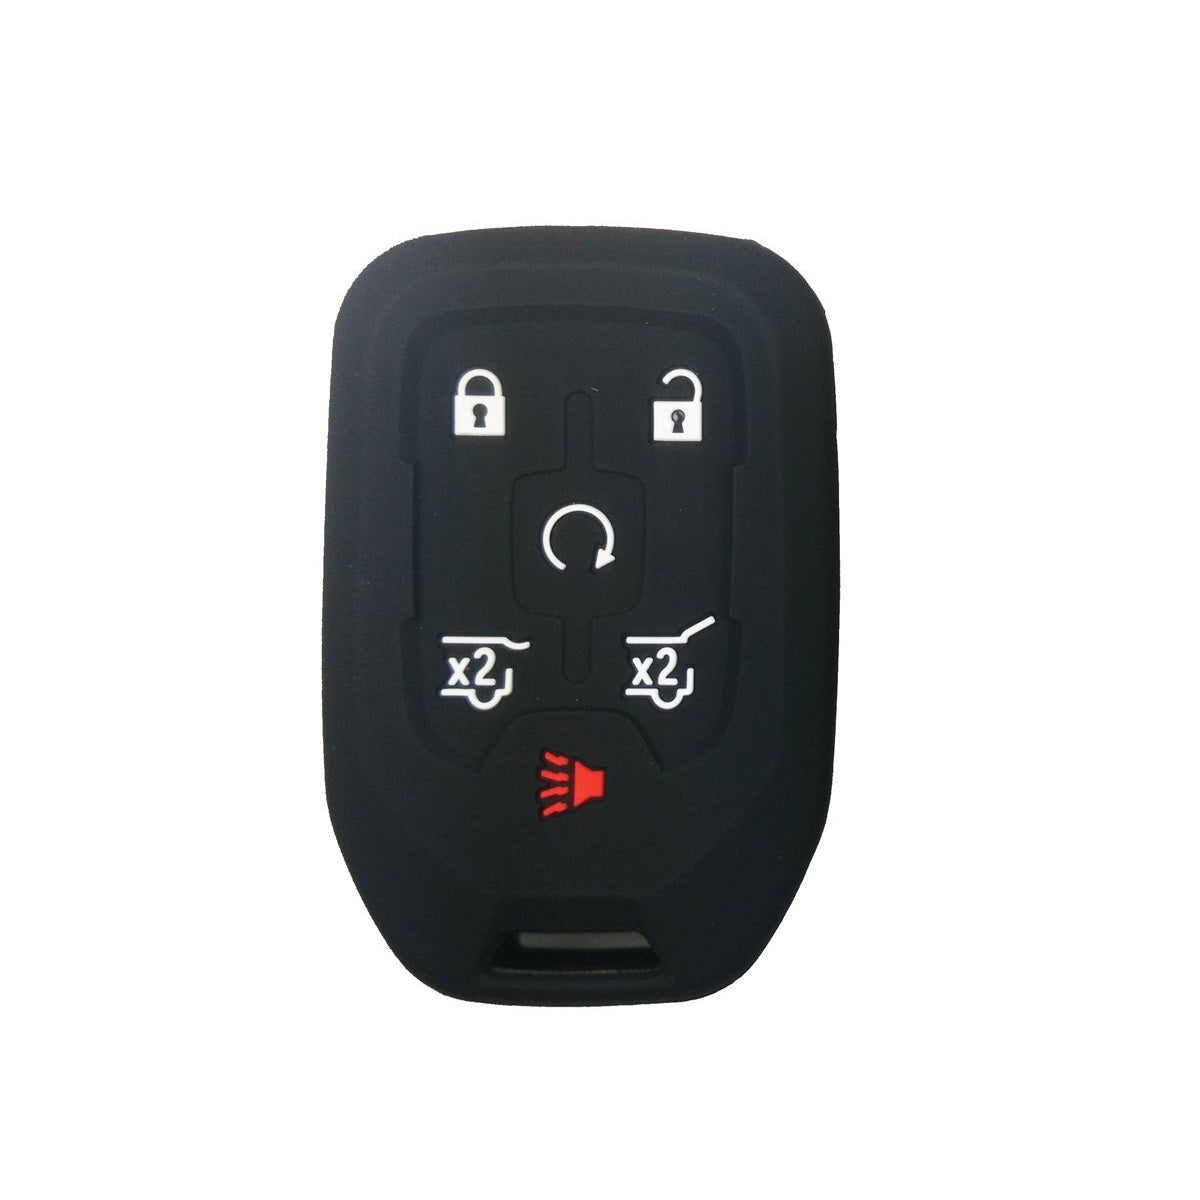 Chevrolet Chevy GMC 6 Button Smart Key Fob Remote Silicone Rubber Protective Cover Skin